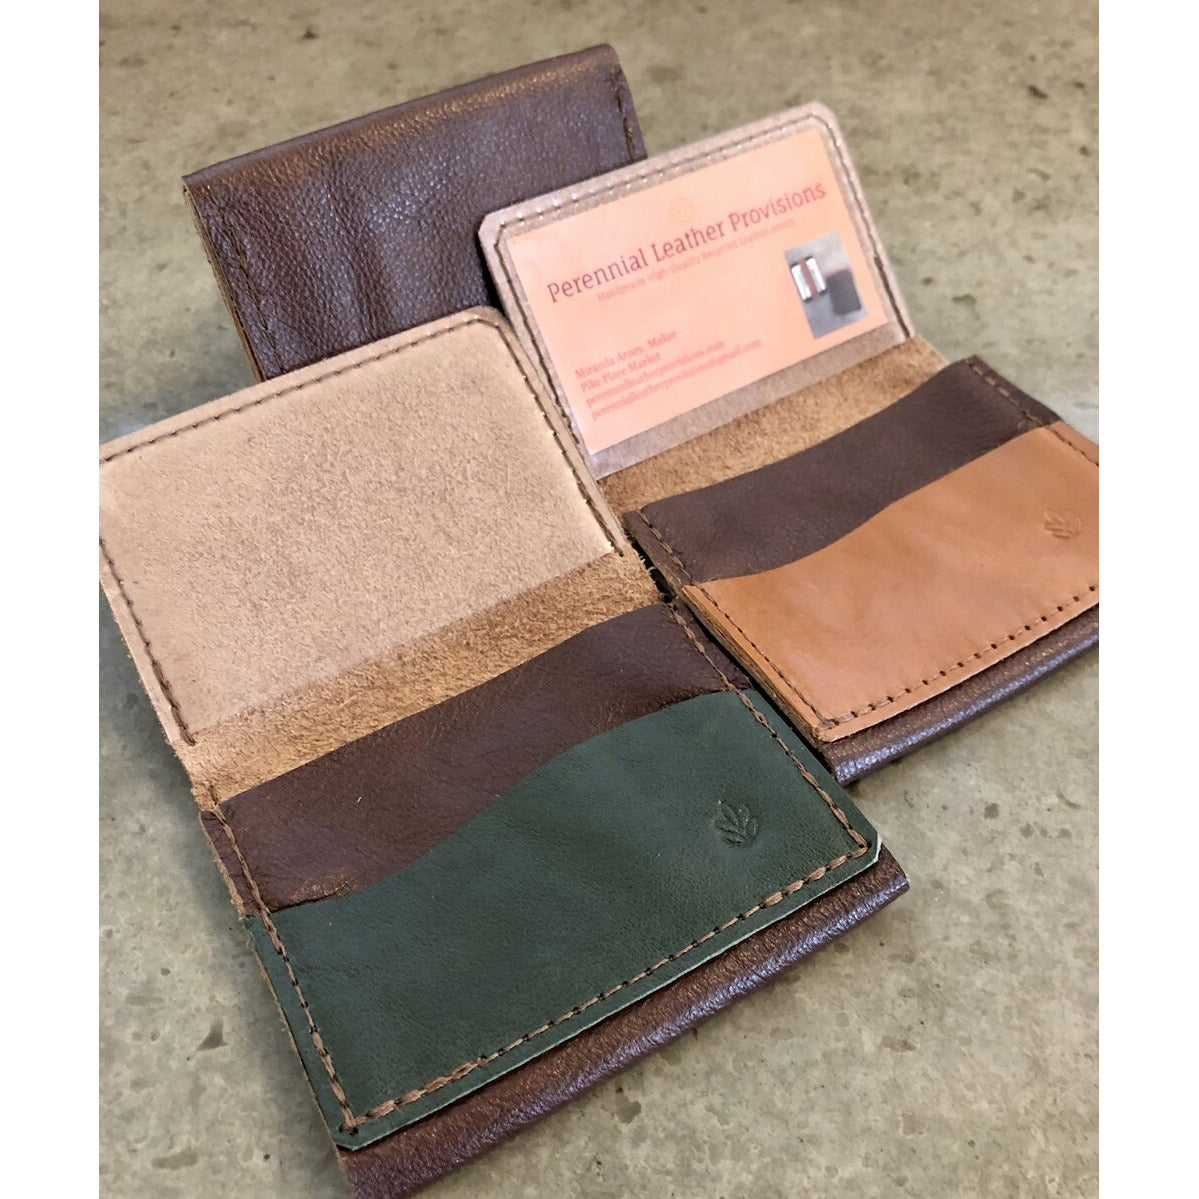 Leather Flip Pouch in Dark Brown, pictured with brown and green pockets, overhead view